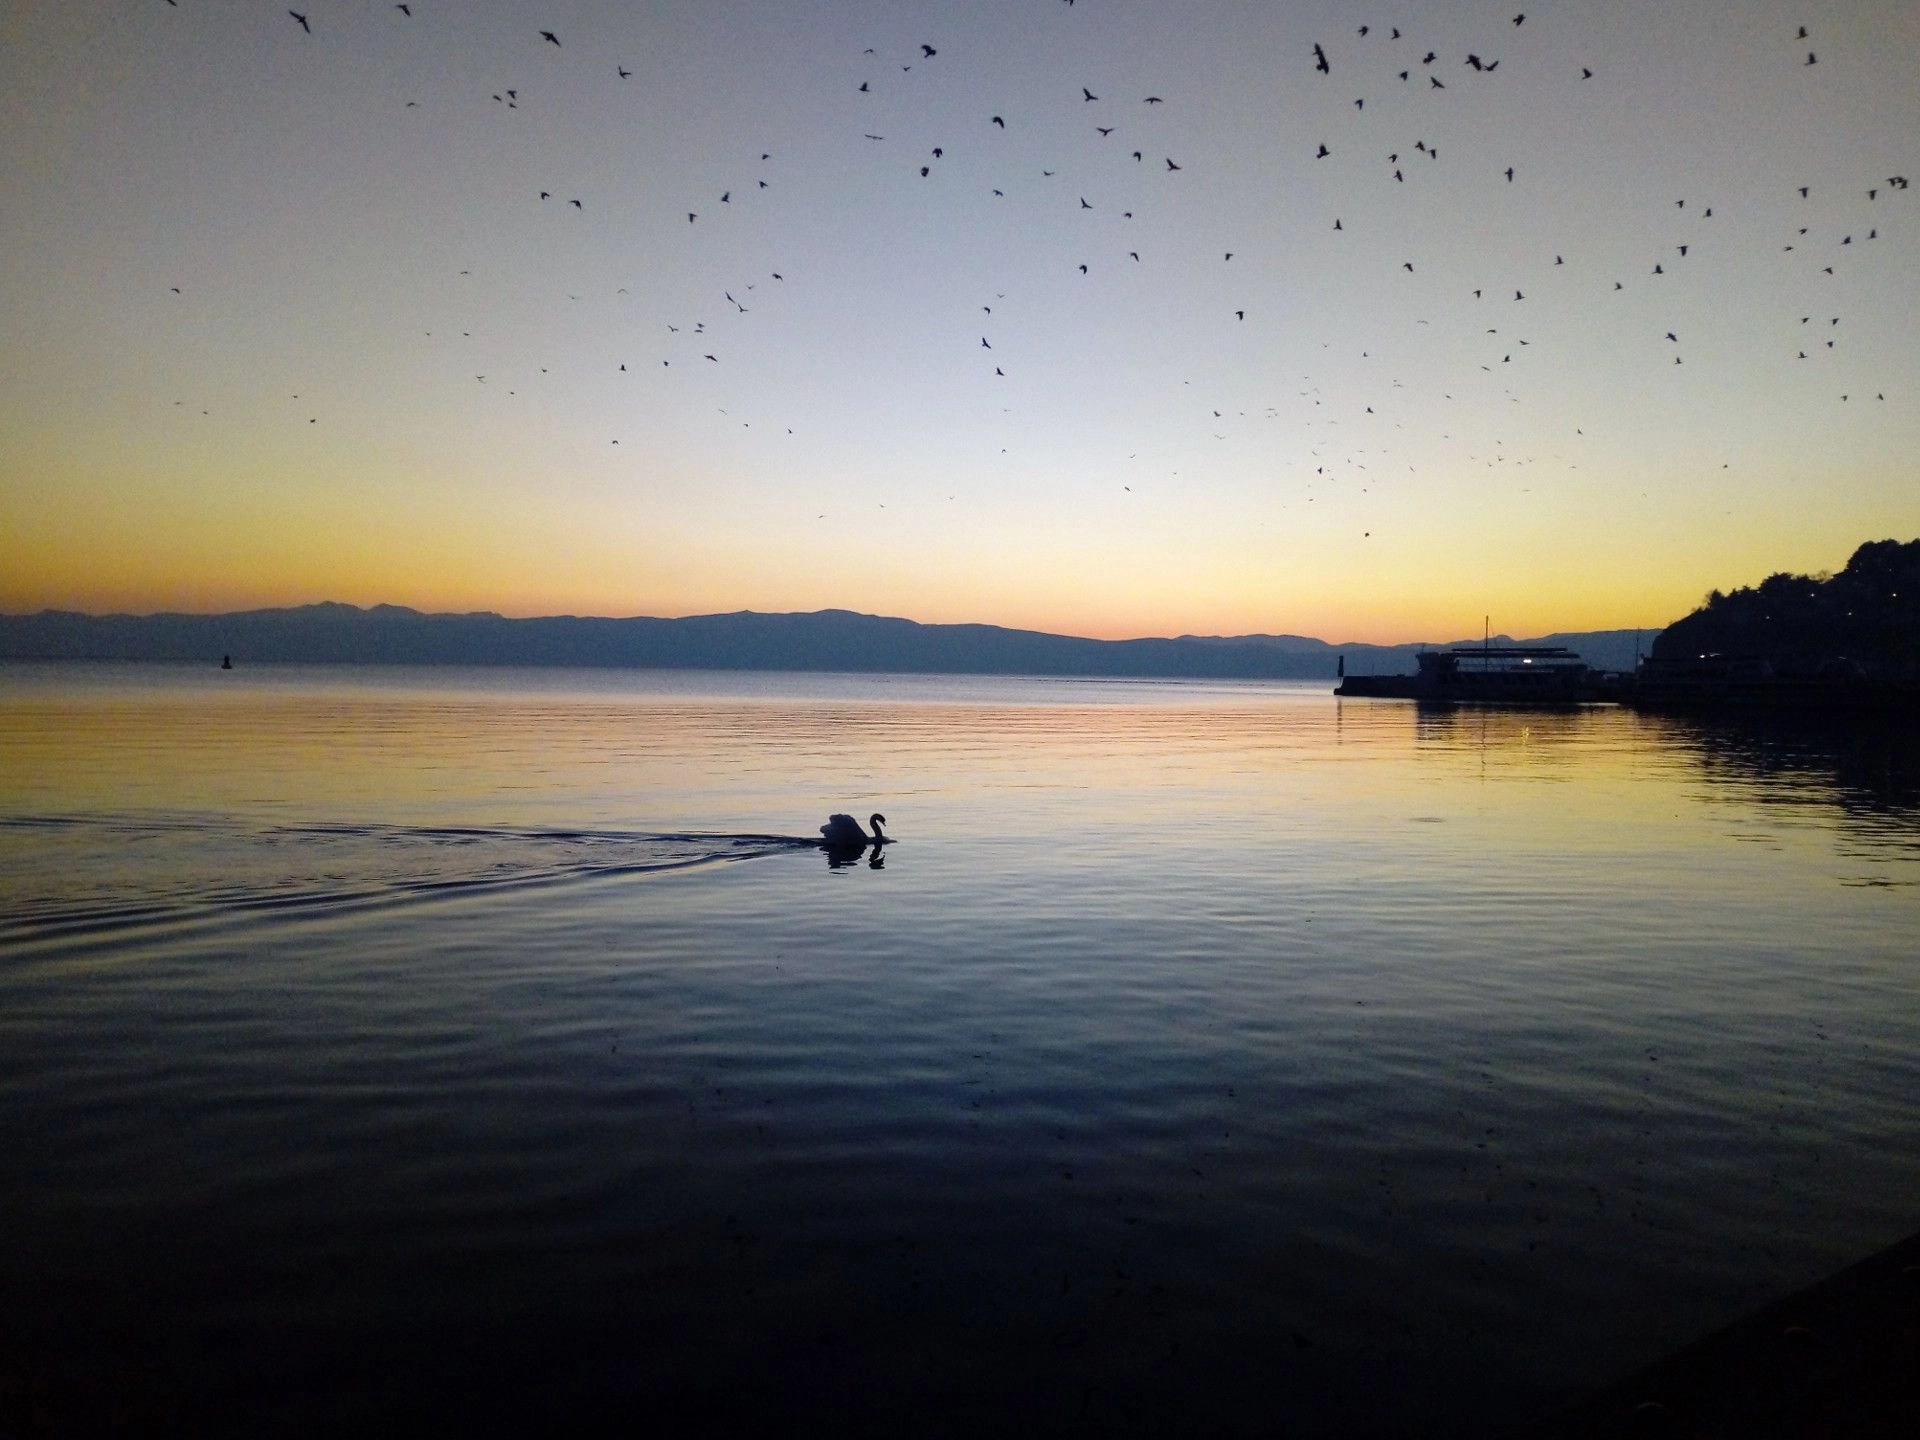 Swan in Lake Ohrid during a sunset. Watching the sunset over Lake Ohrid. Beautiful sunset photos. Amazing sunset photos.